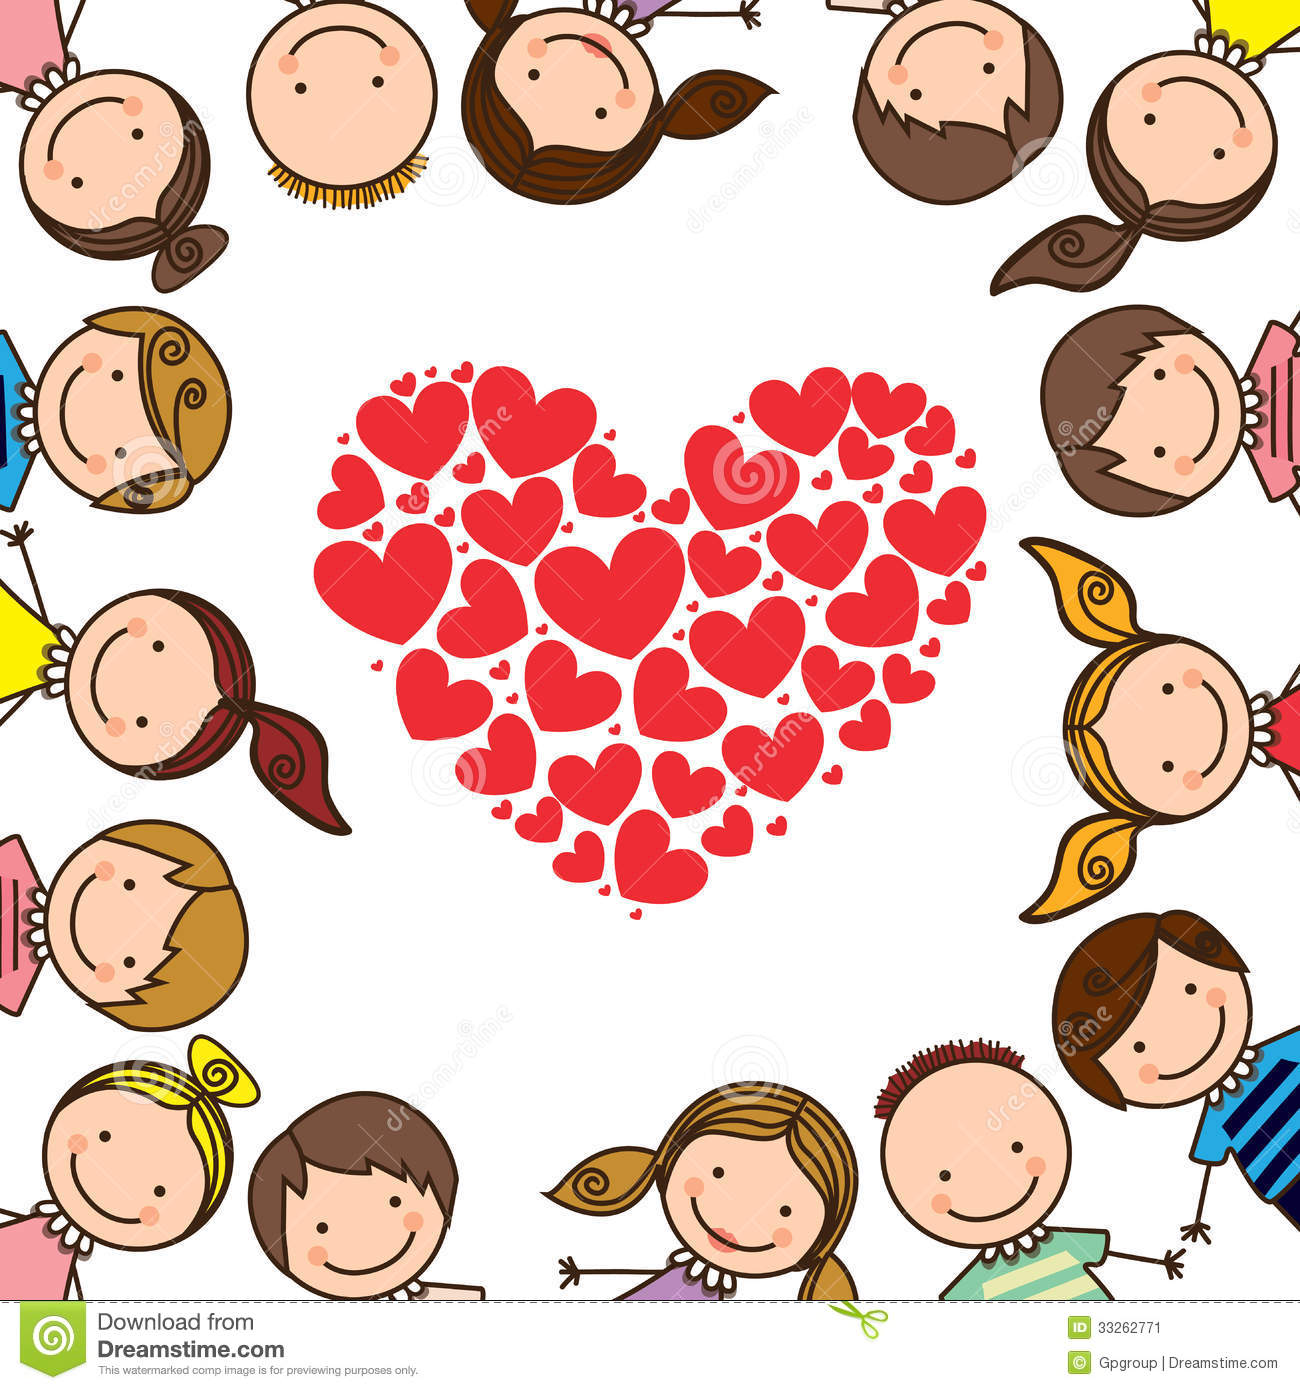 Child showing love clipart clip freeuse download Child love clipart - ClipartFox clip freeuse download